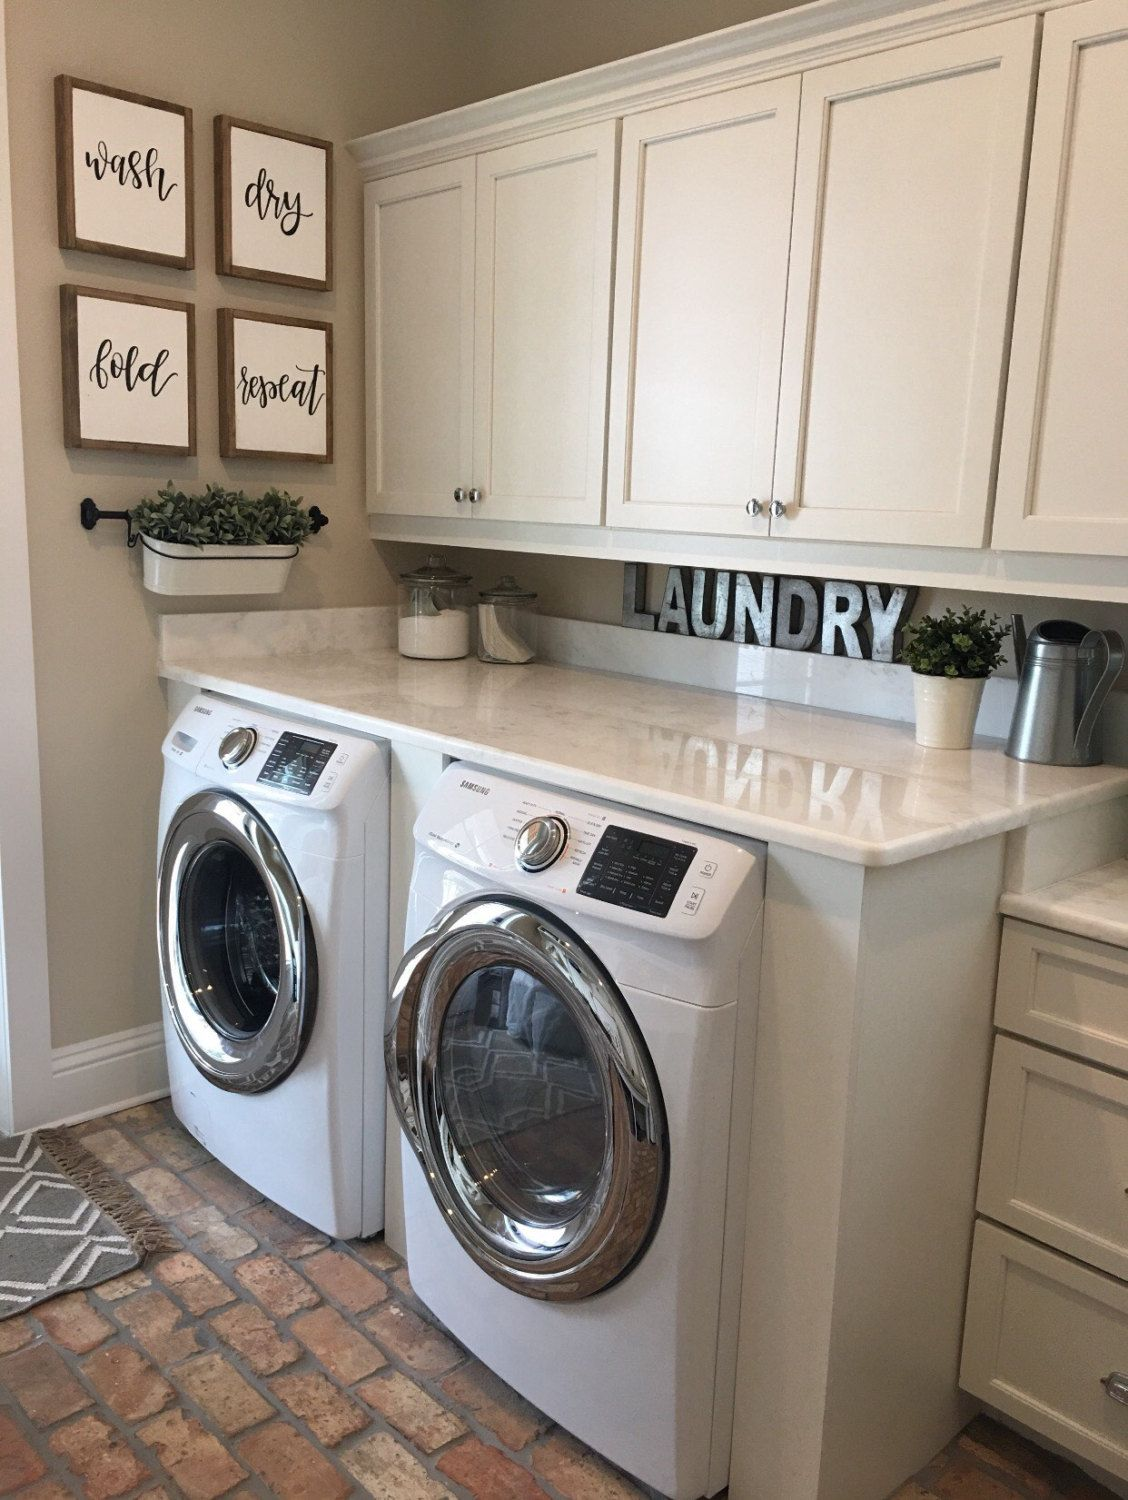 Photo of Wash Dry Fold Repeat Signs | Laundry Room Sign | Rustic Home Decor | Mudroom Signs | Laundry Room Wall Decor | Farmhouse Sign Fixer Upper